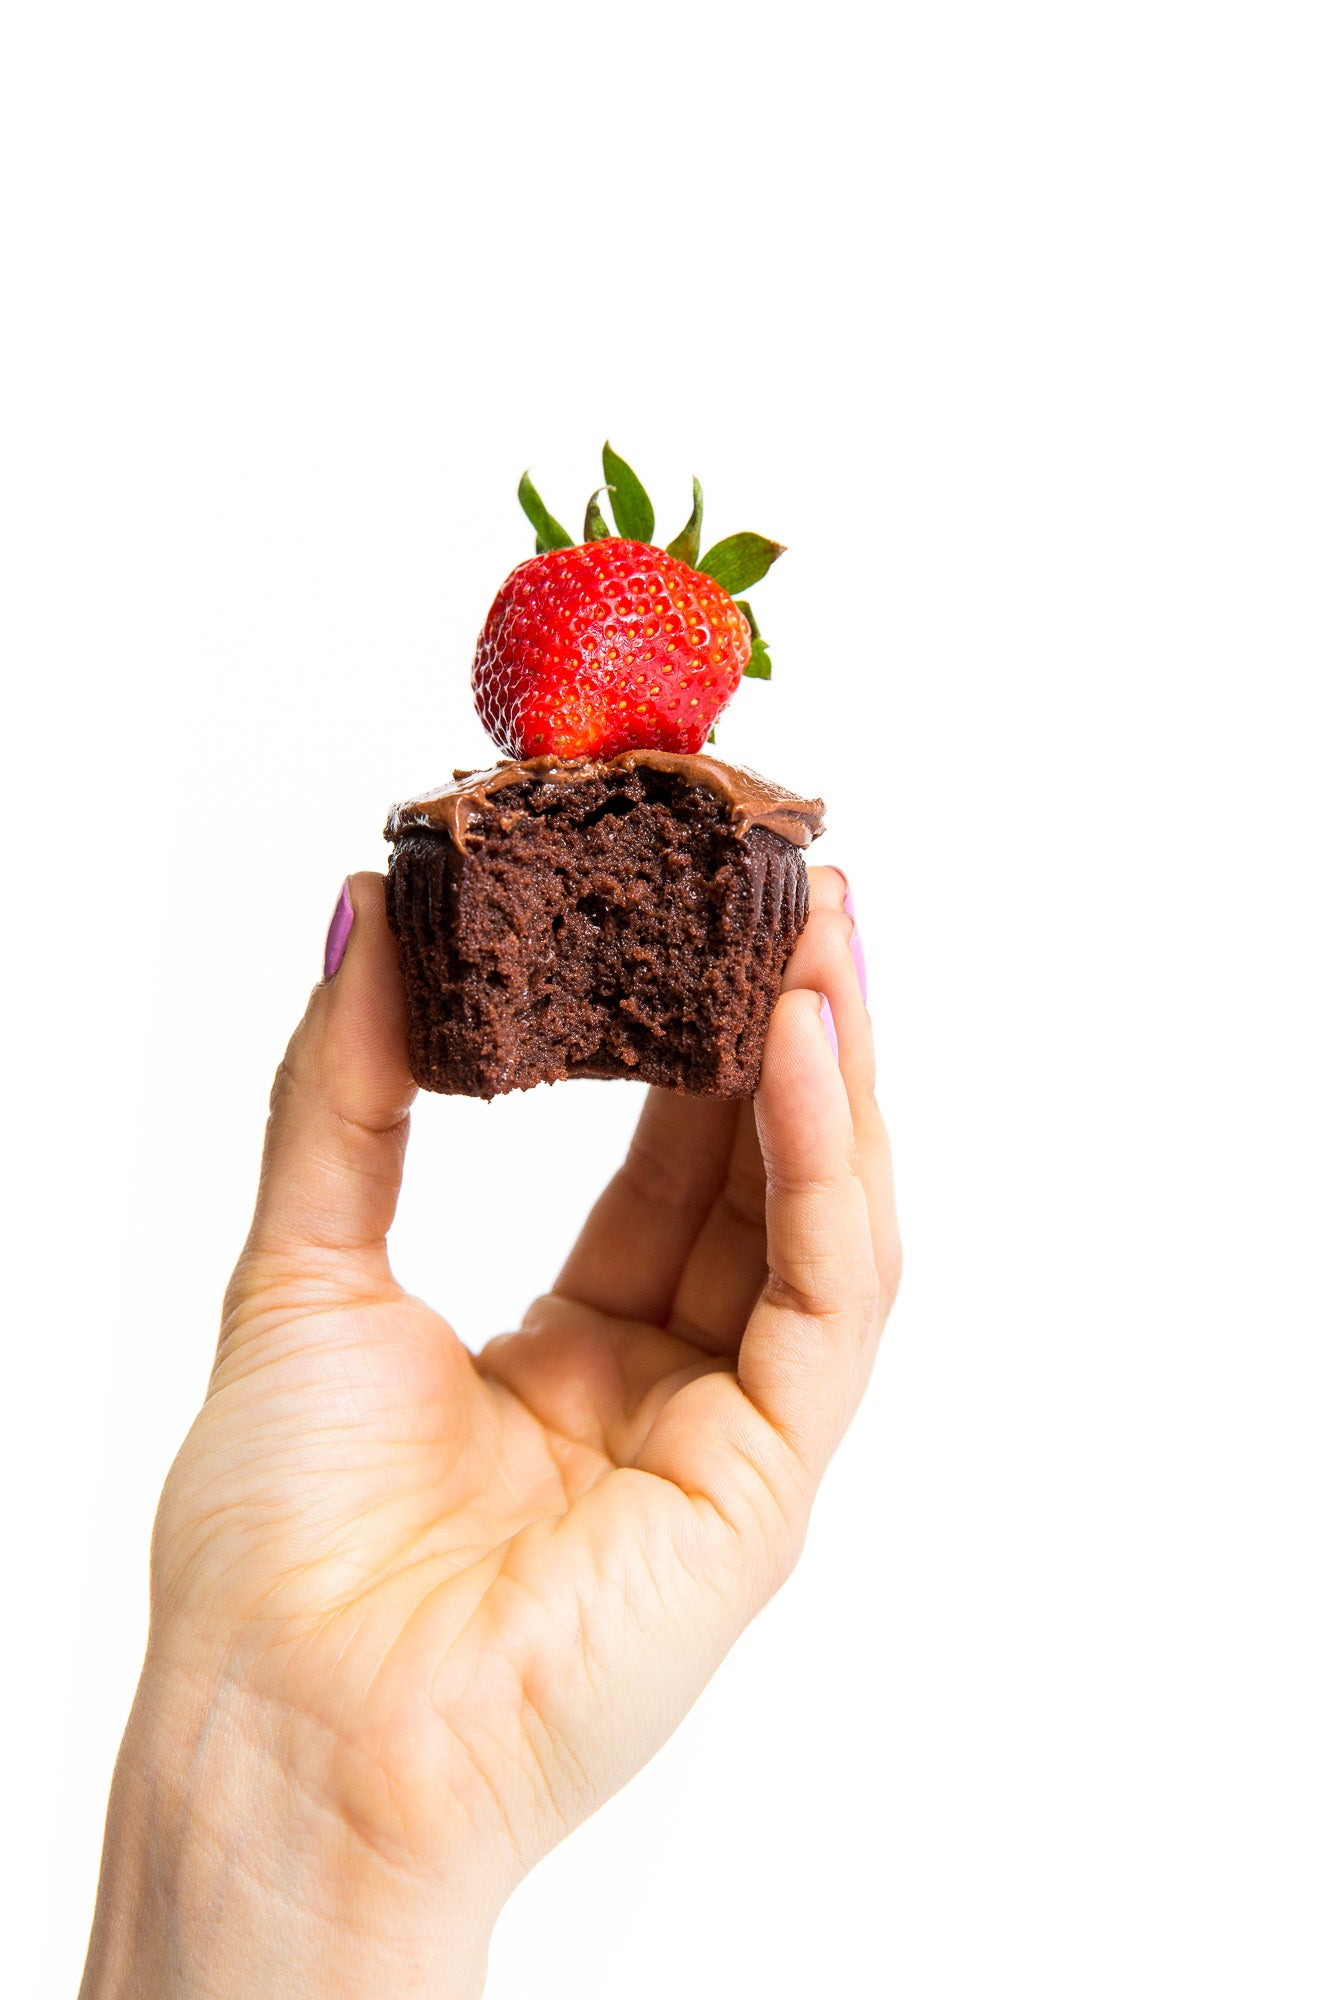 A hand holding a half eaten Miss Jones Baking Co Chocolate Hazelnut cupcake with a strawberry on top